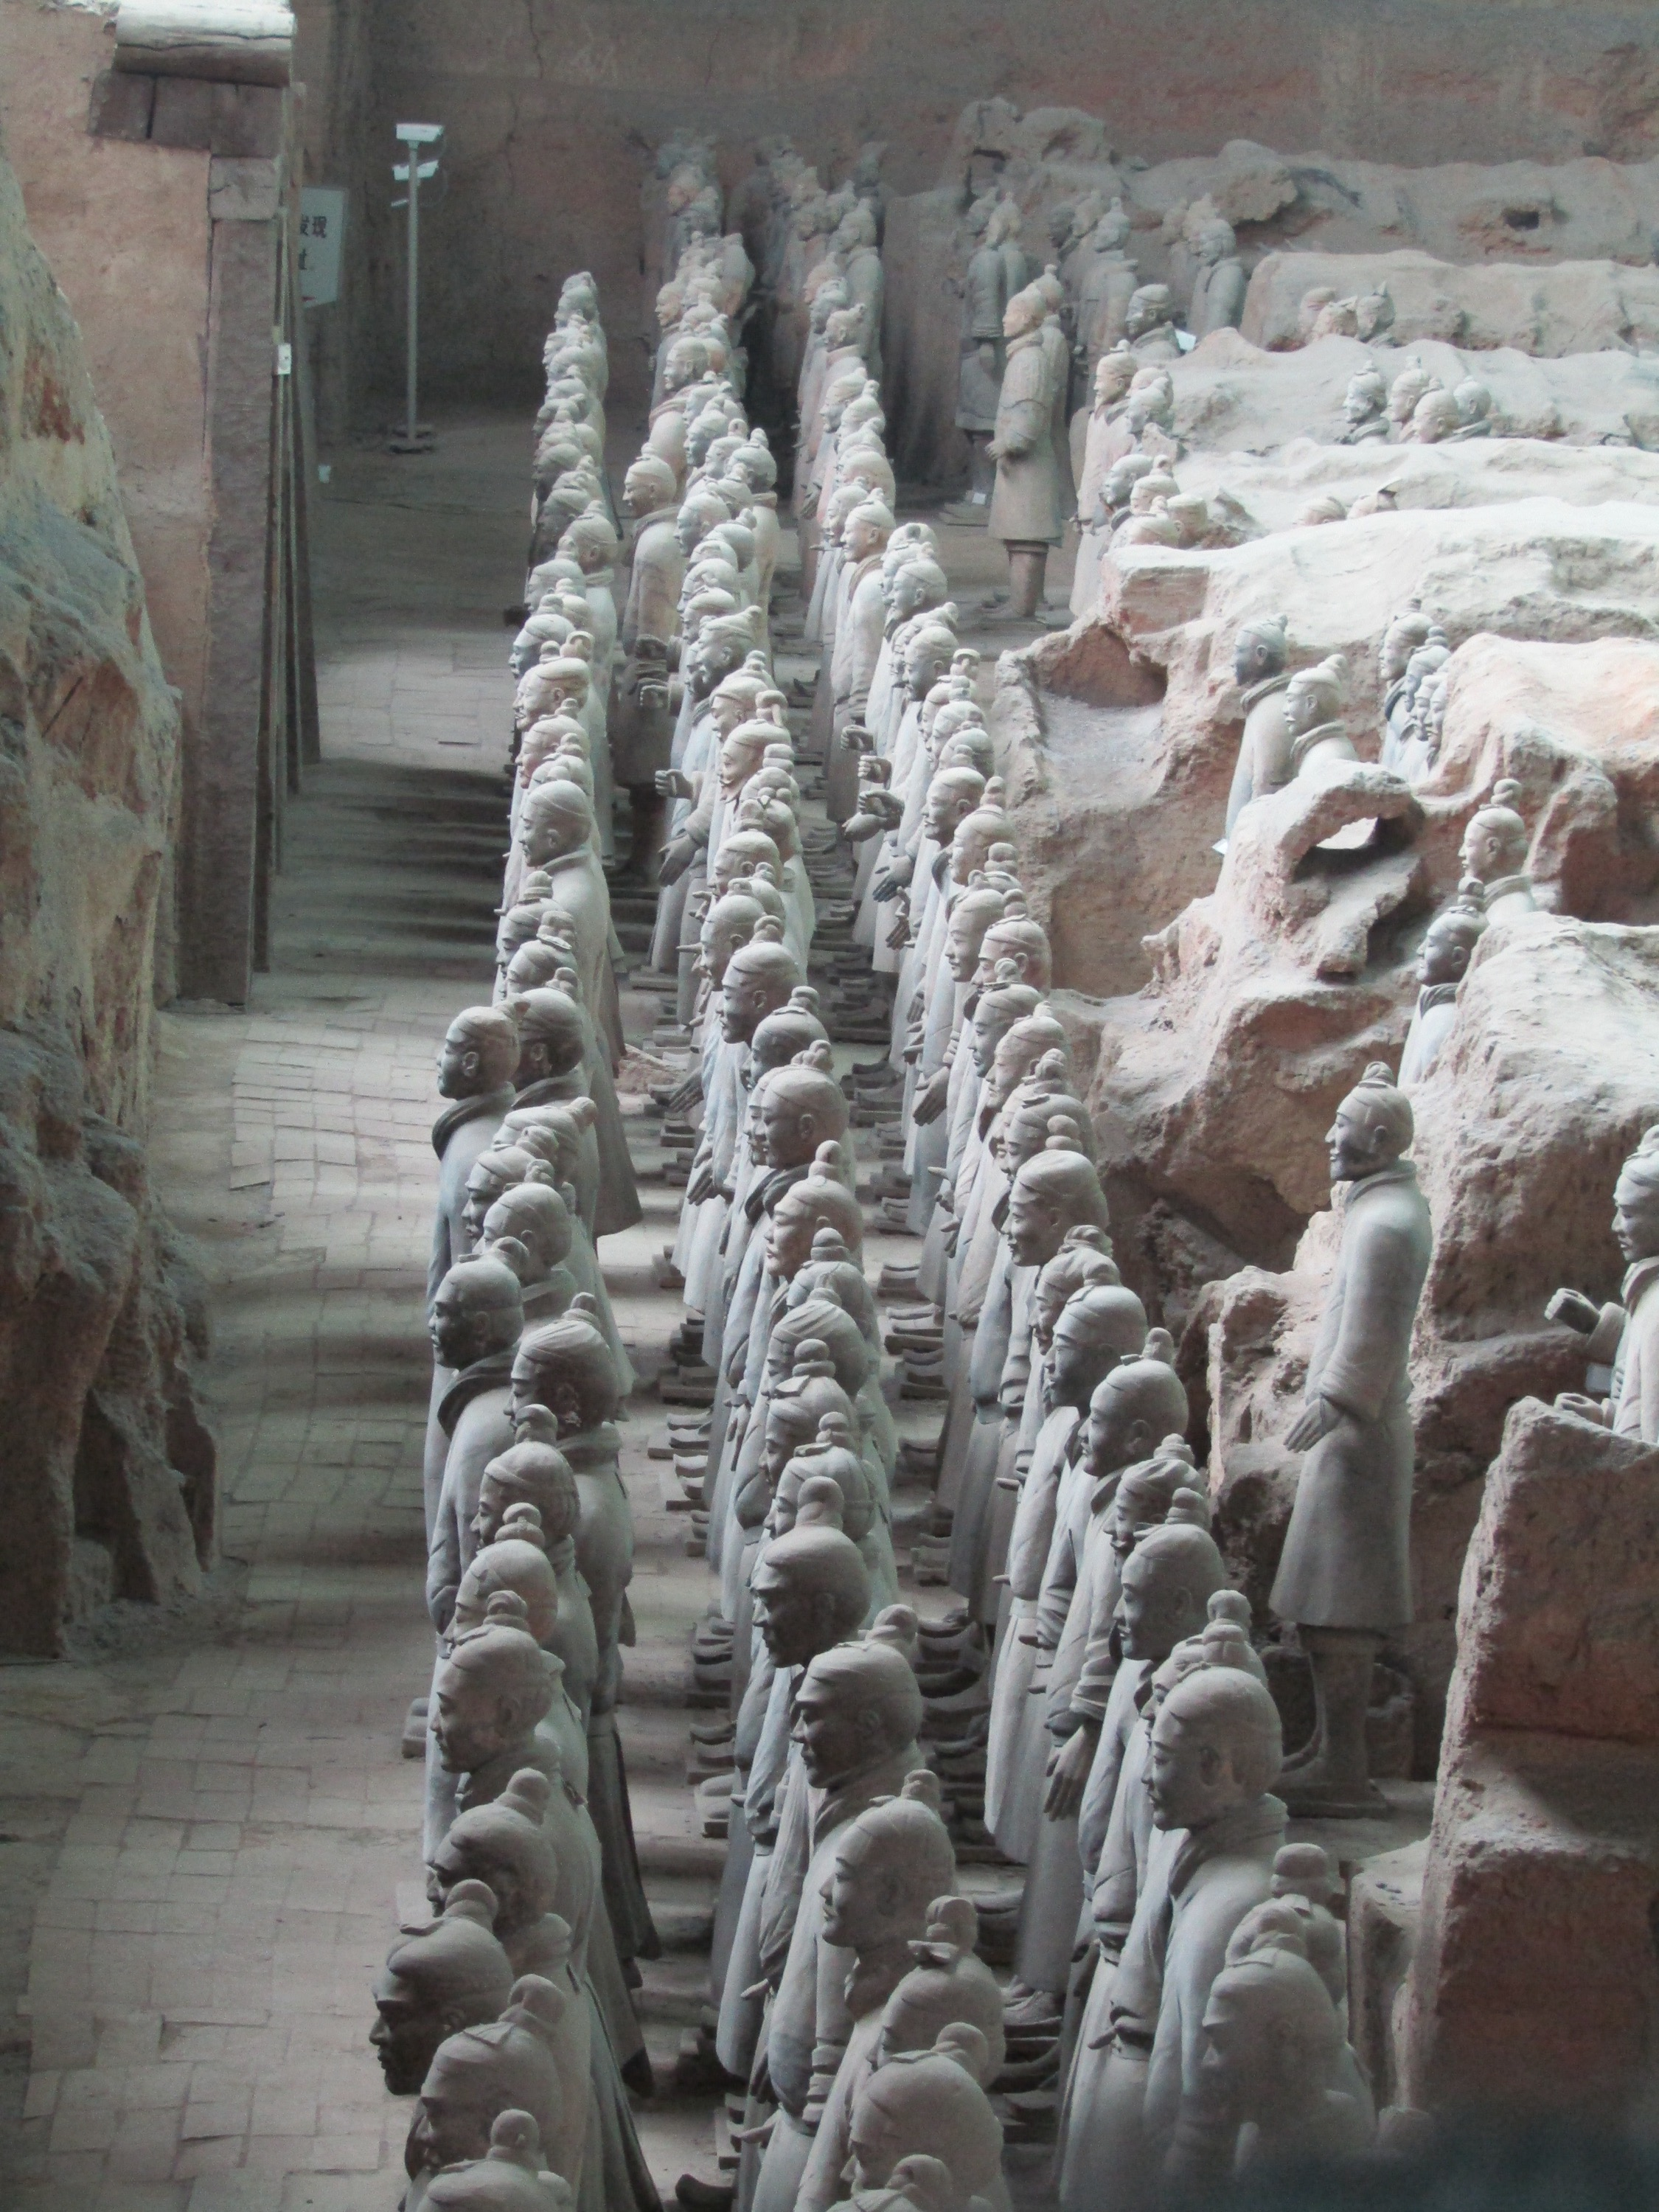 Qin's tomb was discovered two kilometers to the west of the army in a man made mound of earth the size of a small town. It's surrounded by rivers of mercury and the gas is so toxic that it has not yet been exhumed. His army faces east to draw life from the rising sun.